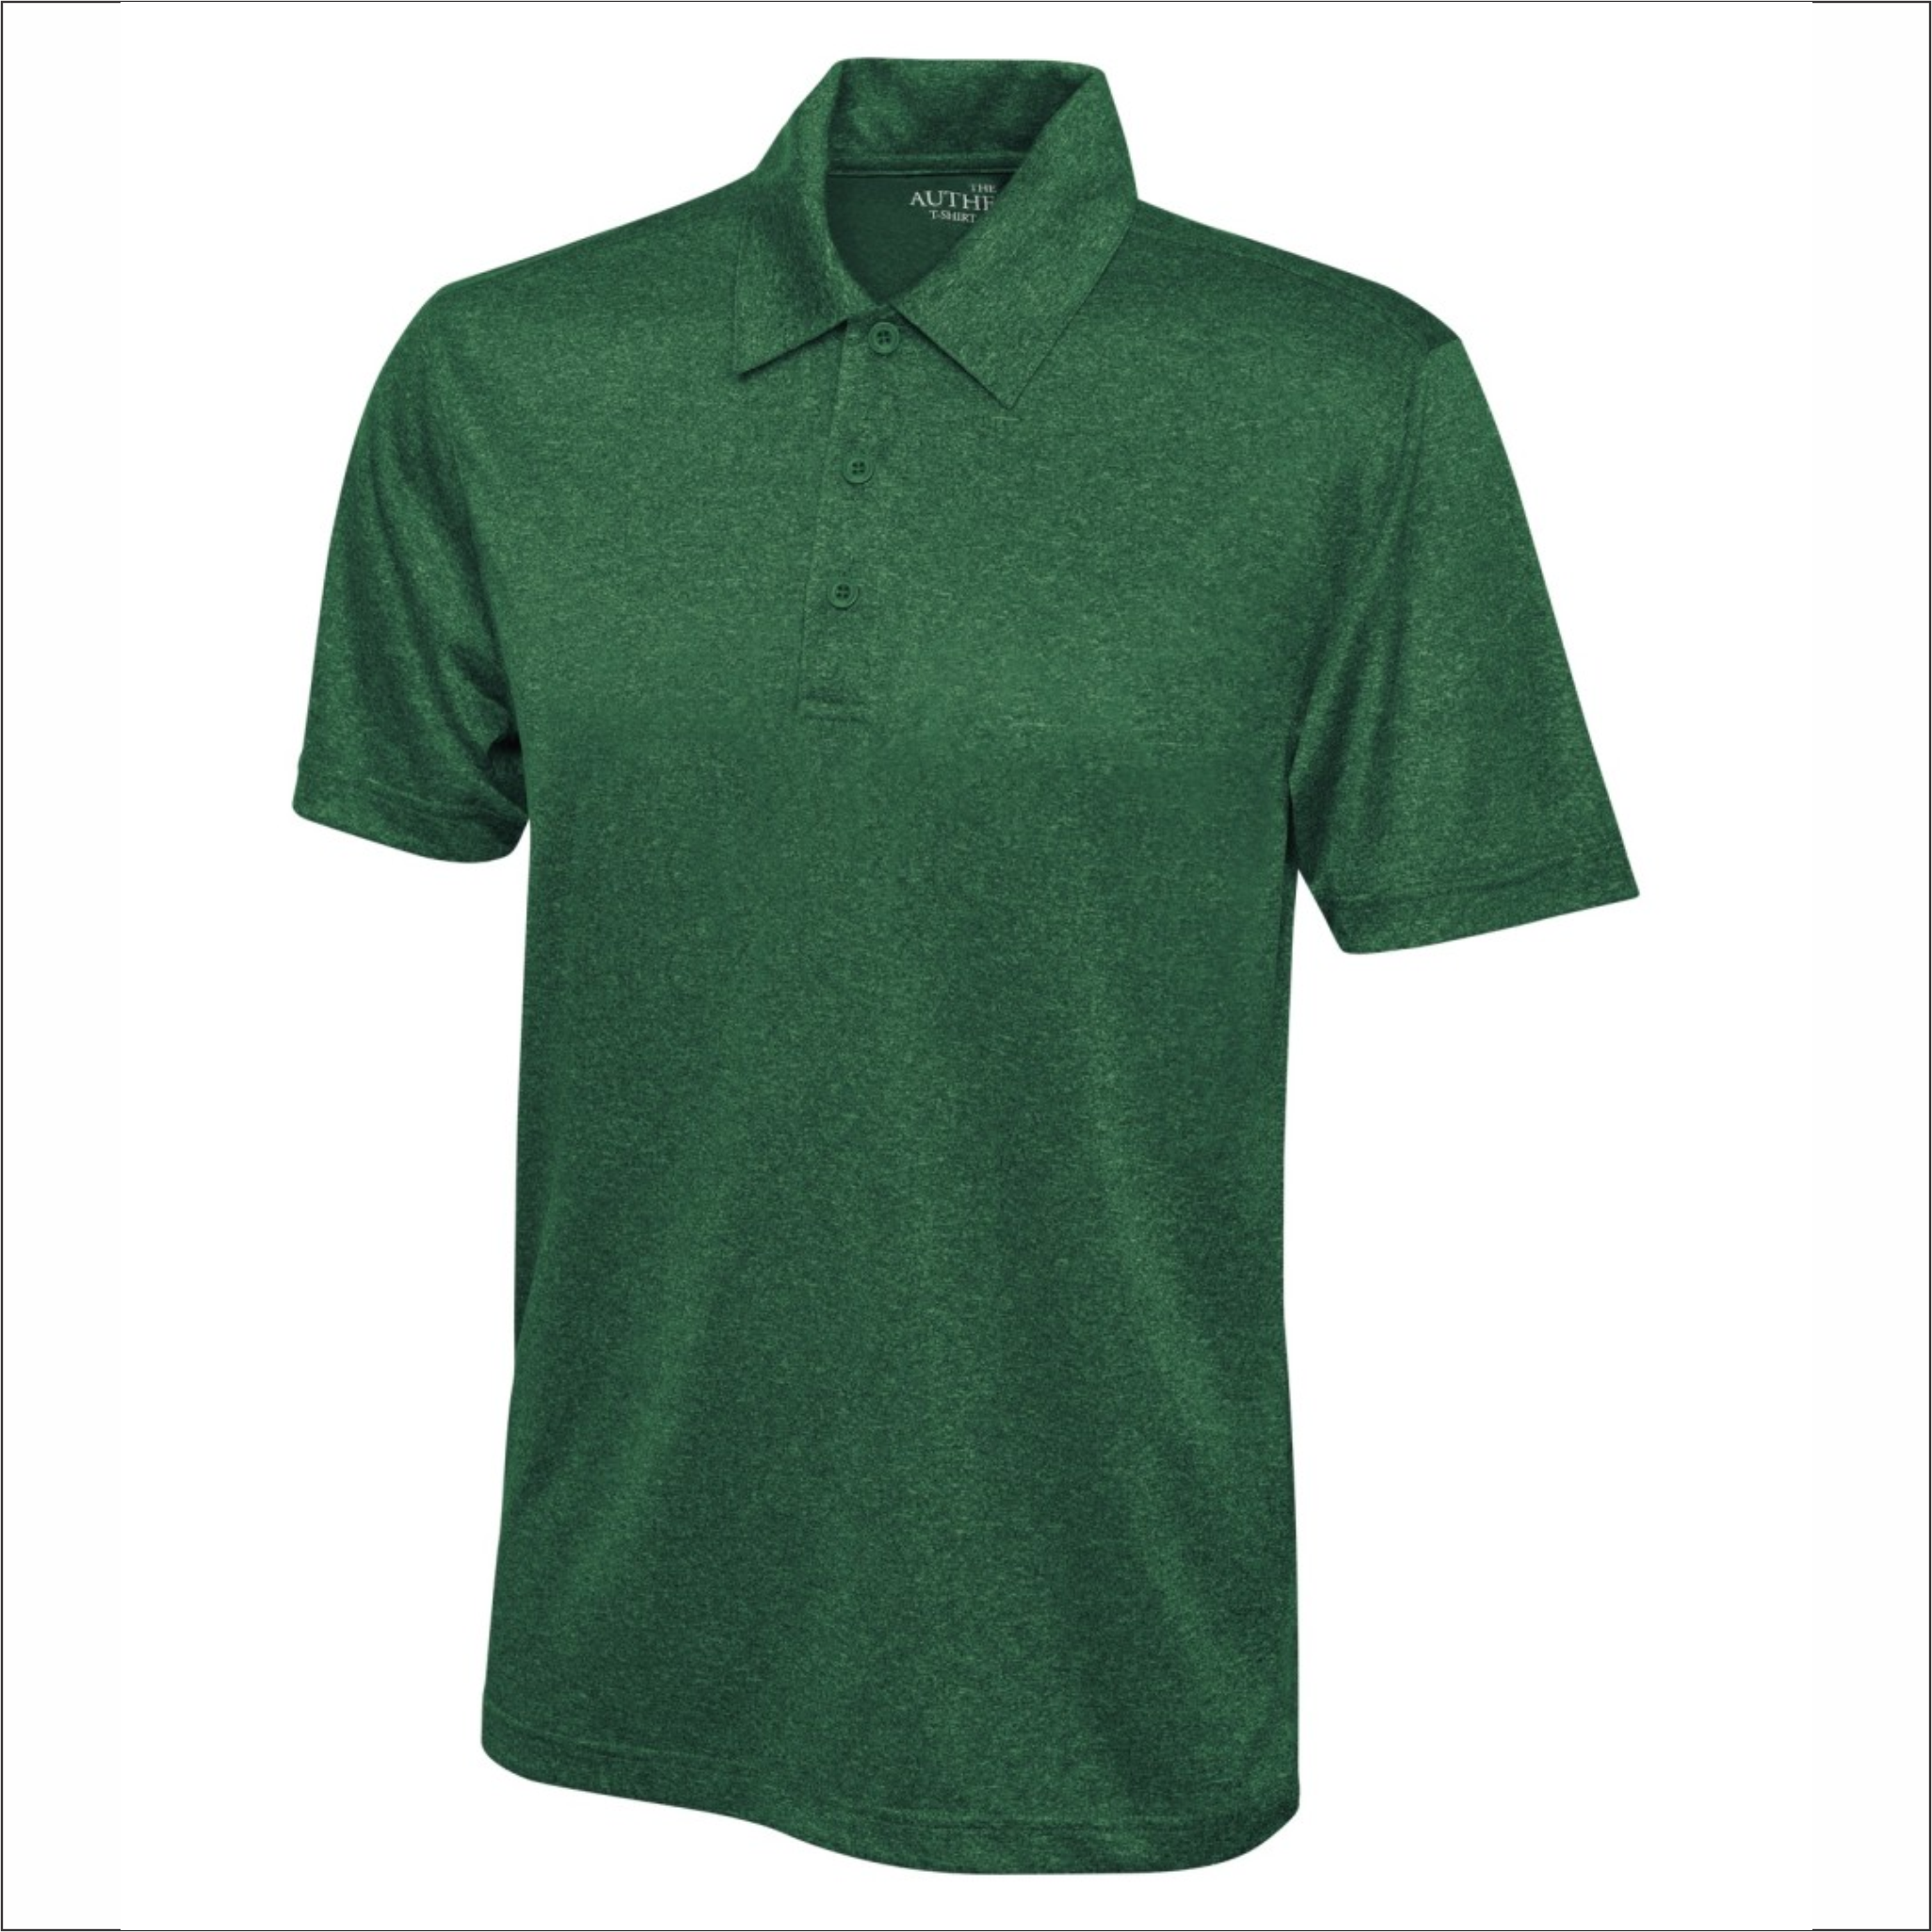 Mens Polo - Polyester - ATC S3518